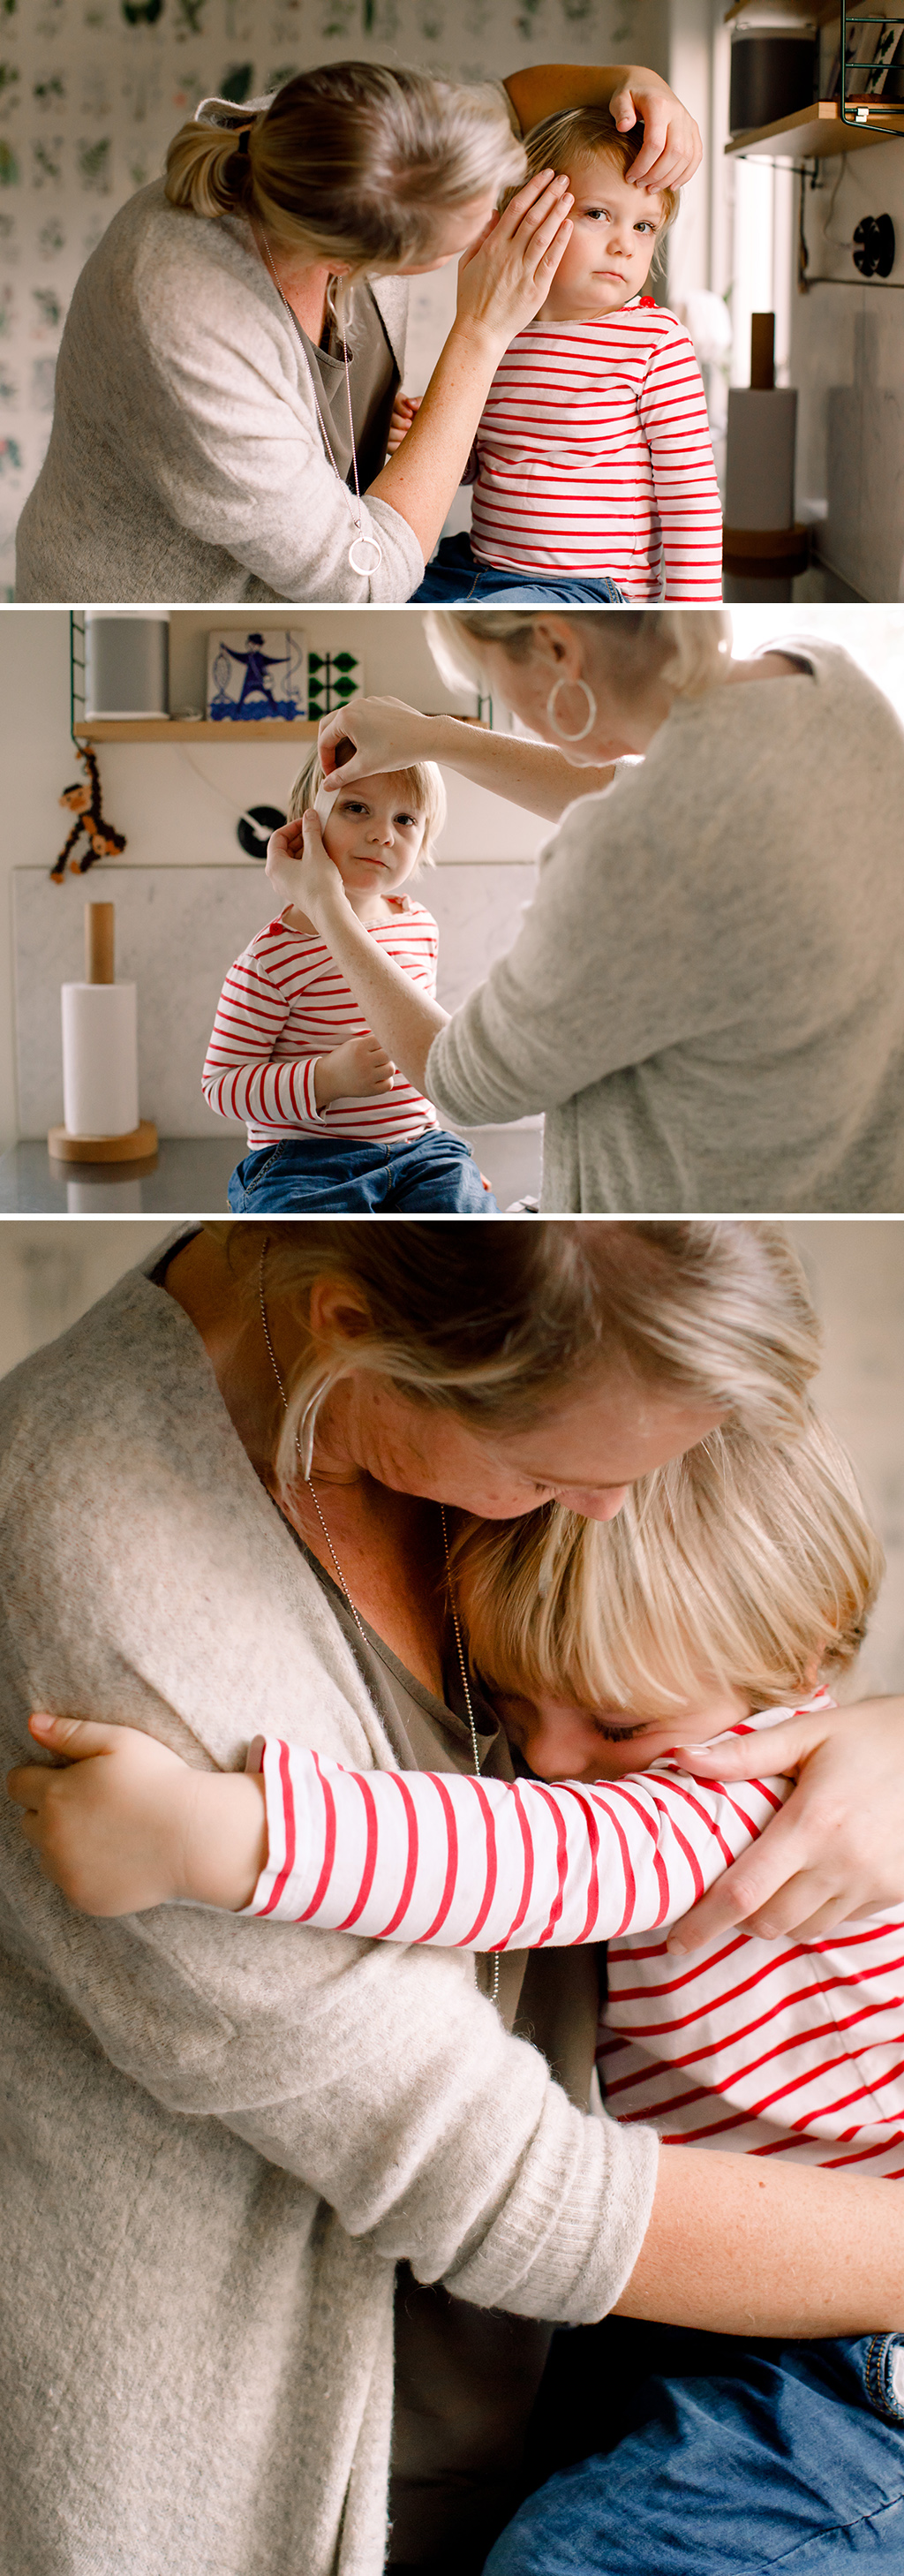 Lifestylefotografering_Familjefotografering_hemma_day-in-the-life_8.jpg